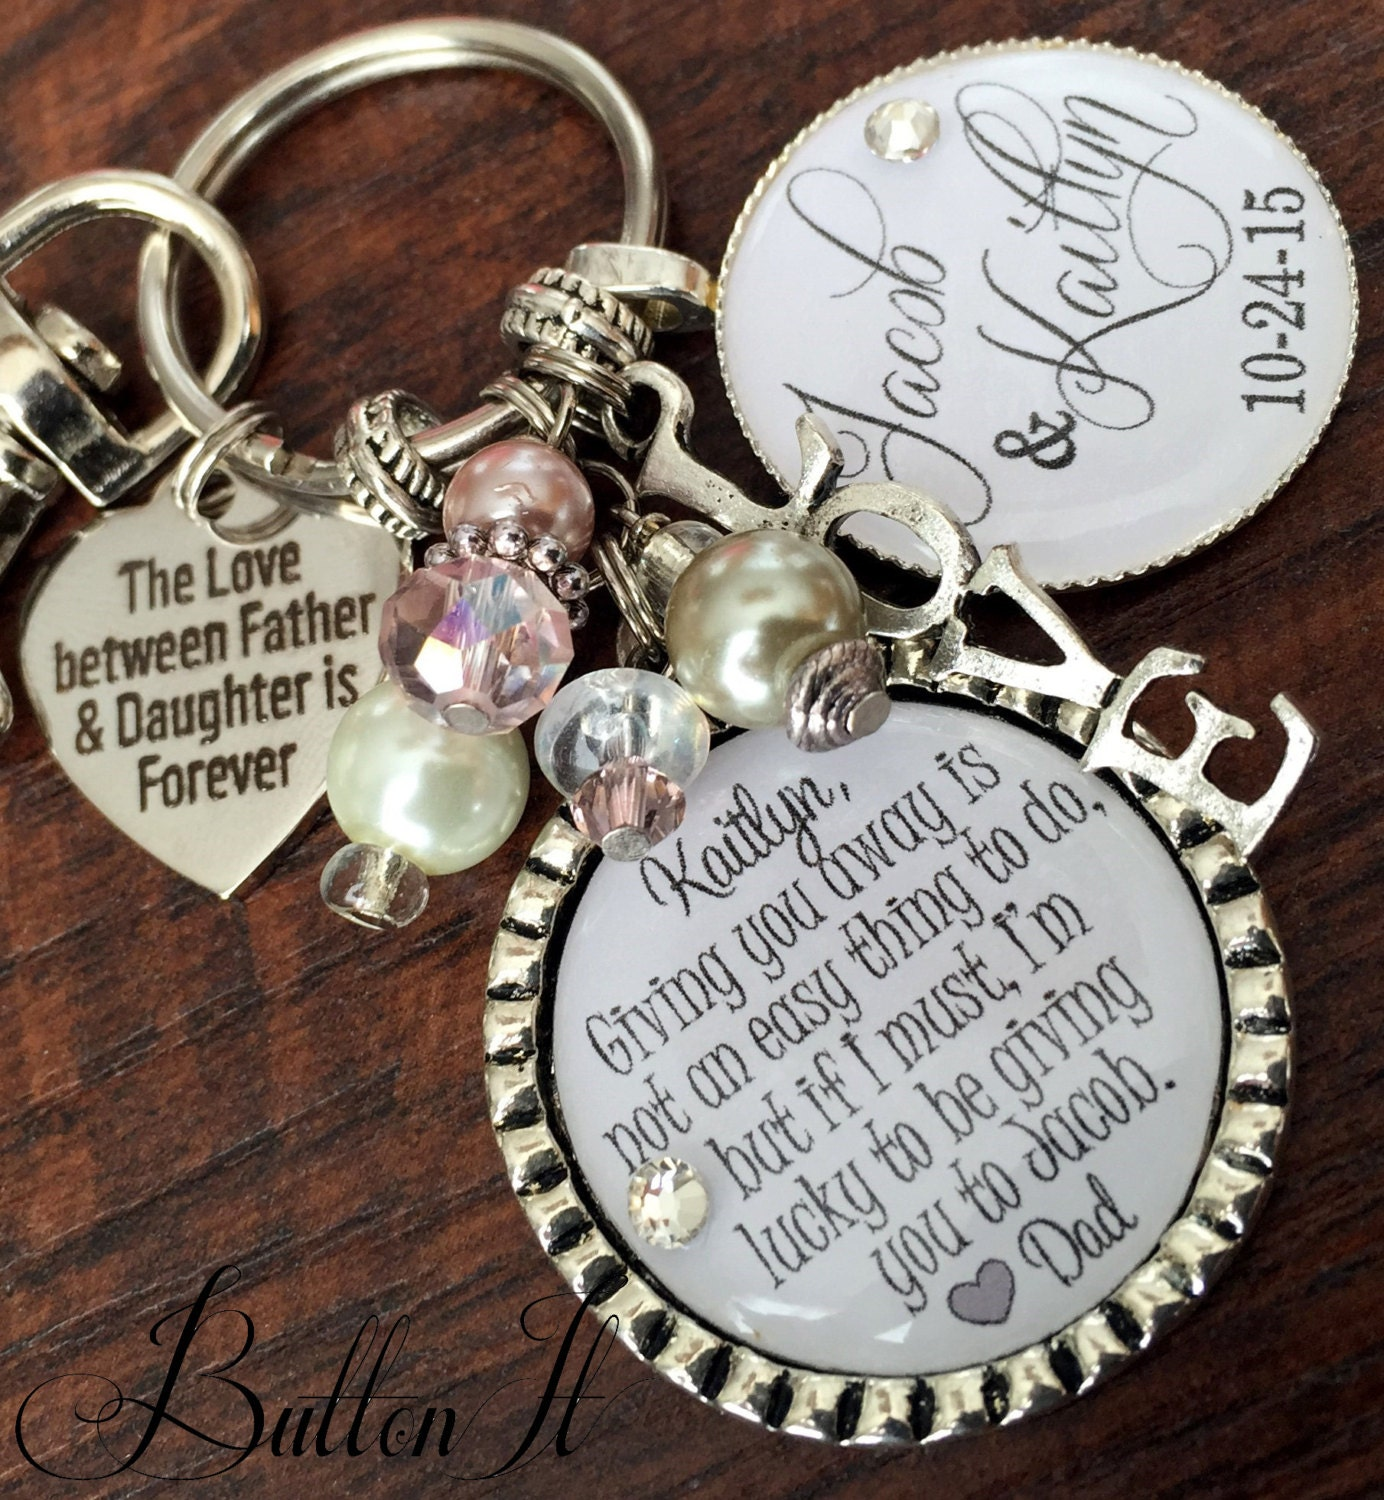 Wedding Gifts For Bride: Wedding Gift For Bride From Dad Daughter Wedding Gift Bridal